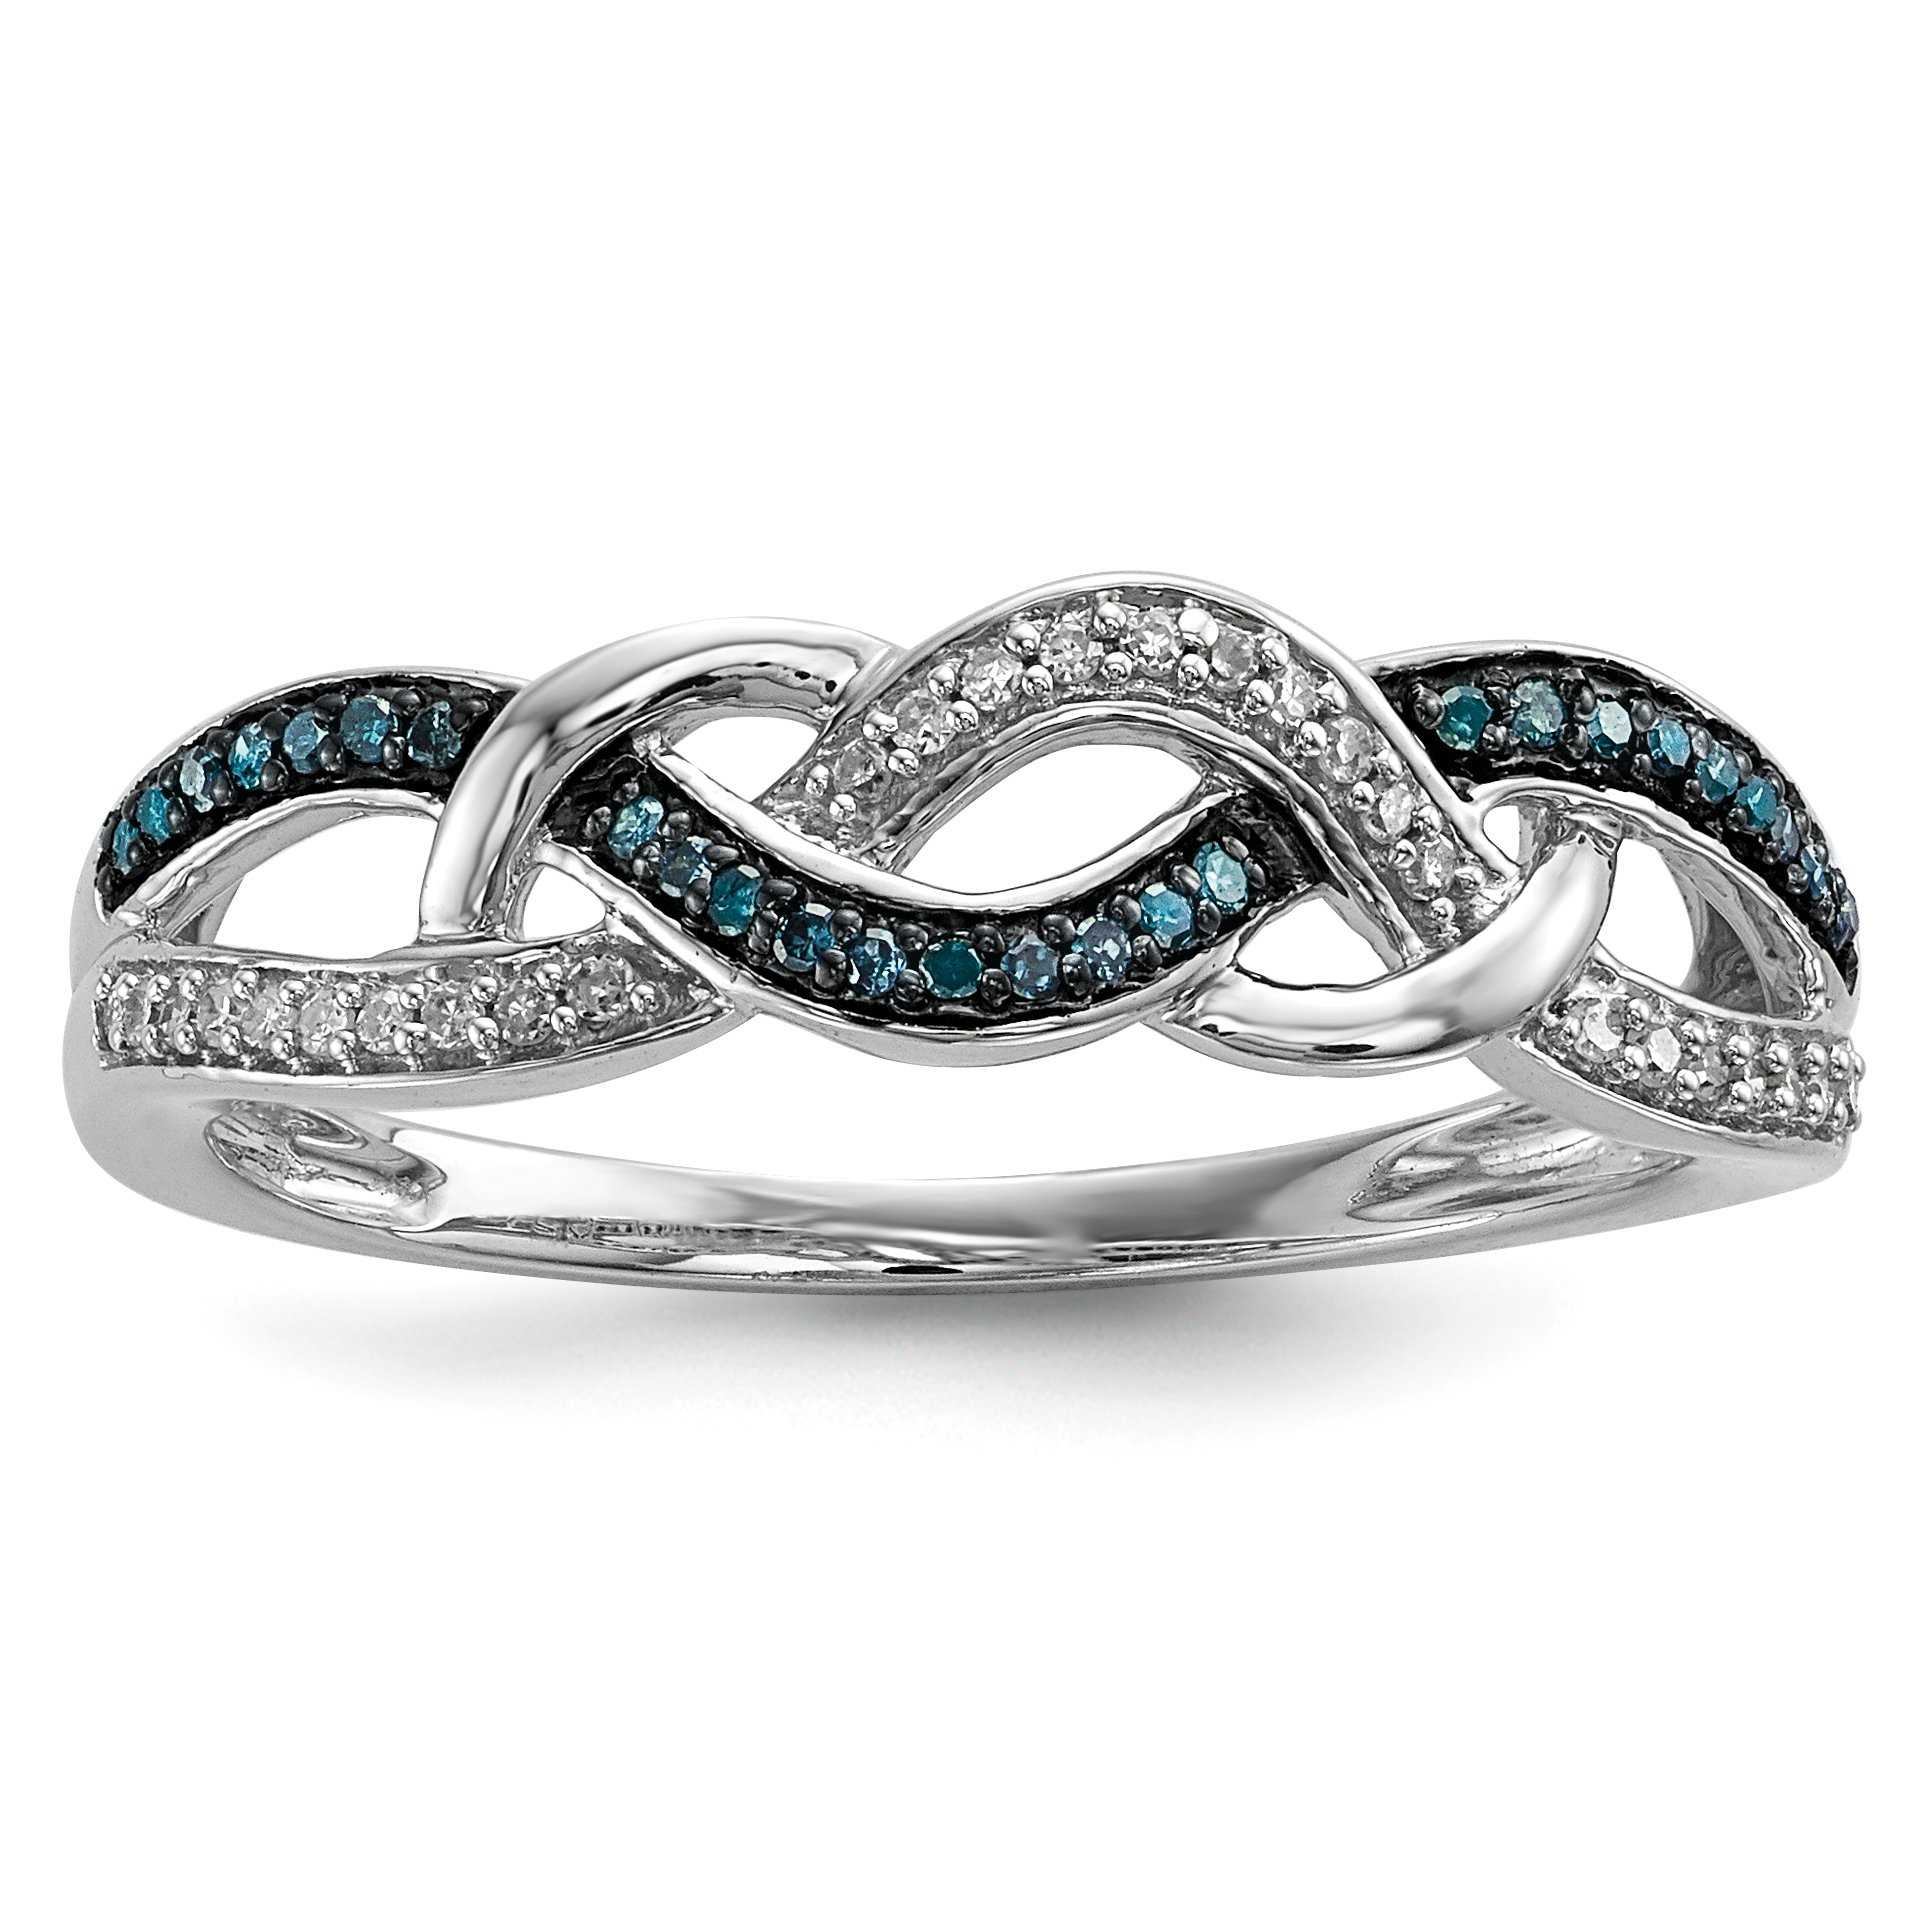 ICE CARATS 925 Sterling Silver Blue White Diamond Band Ring Size 6.00 Fine Jewelry Gift Set For Women Heart